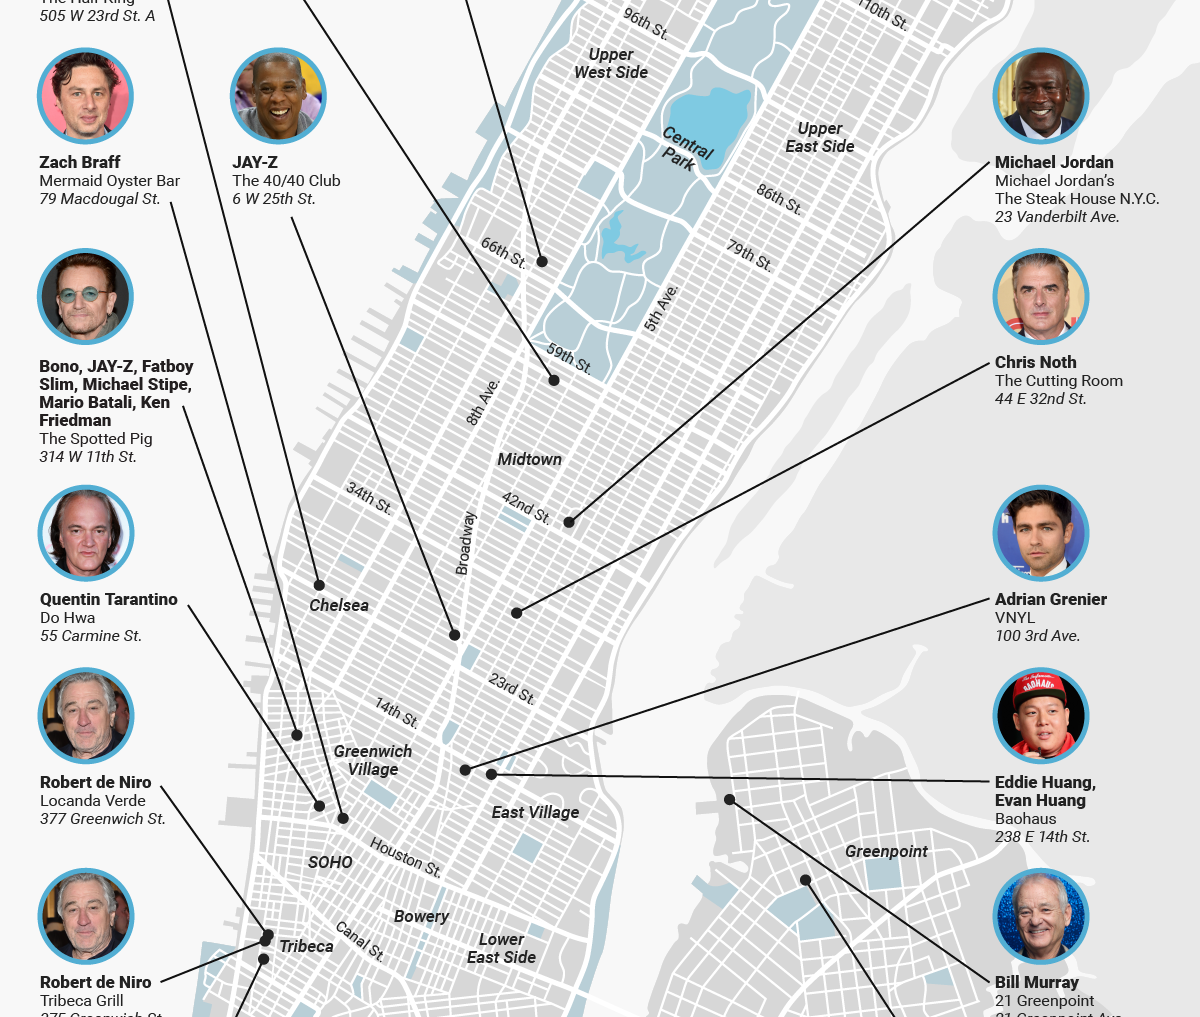 NYC Celebrities Mapping 2019